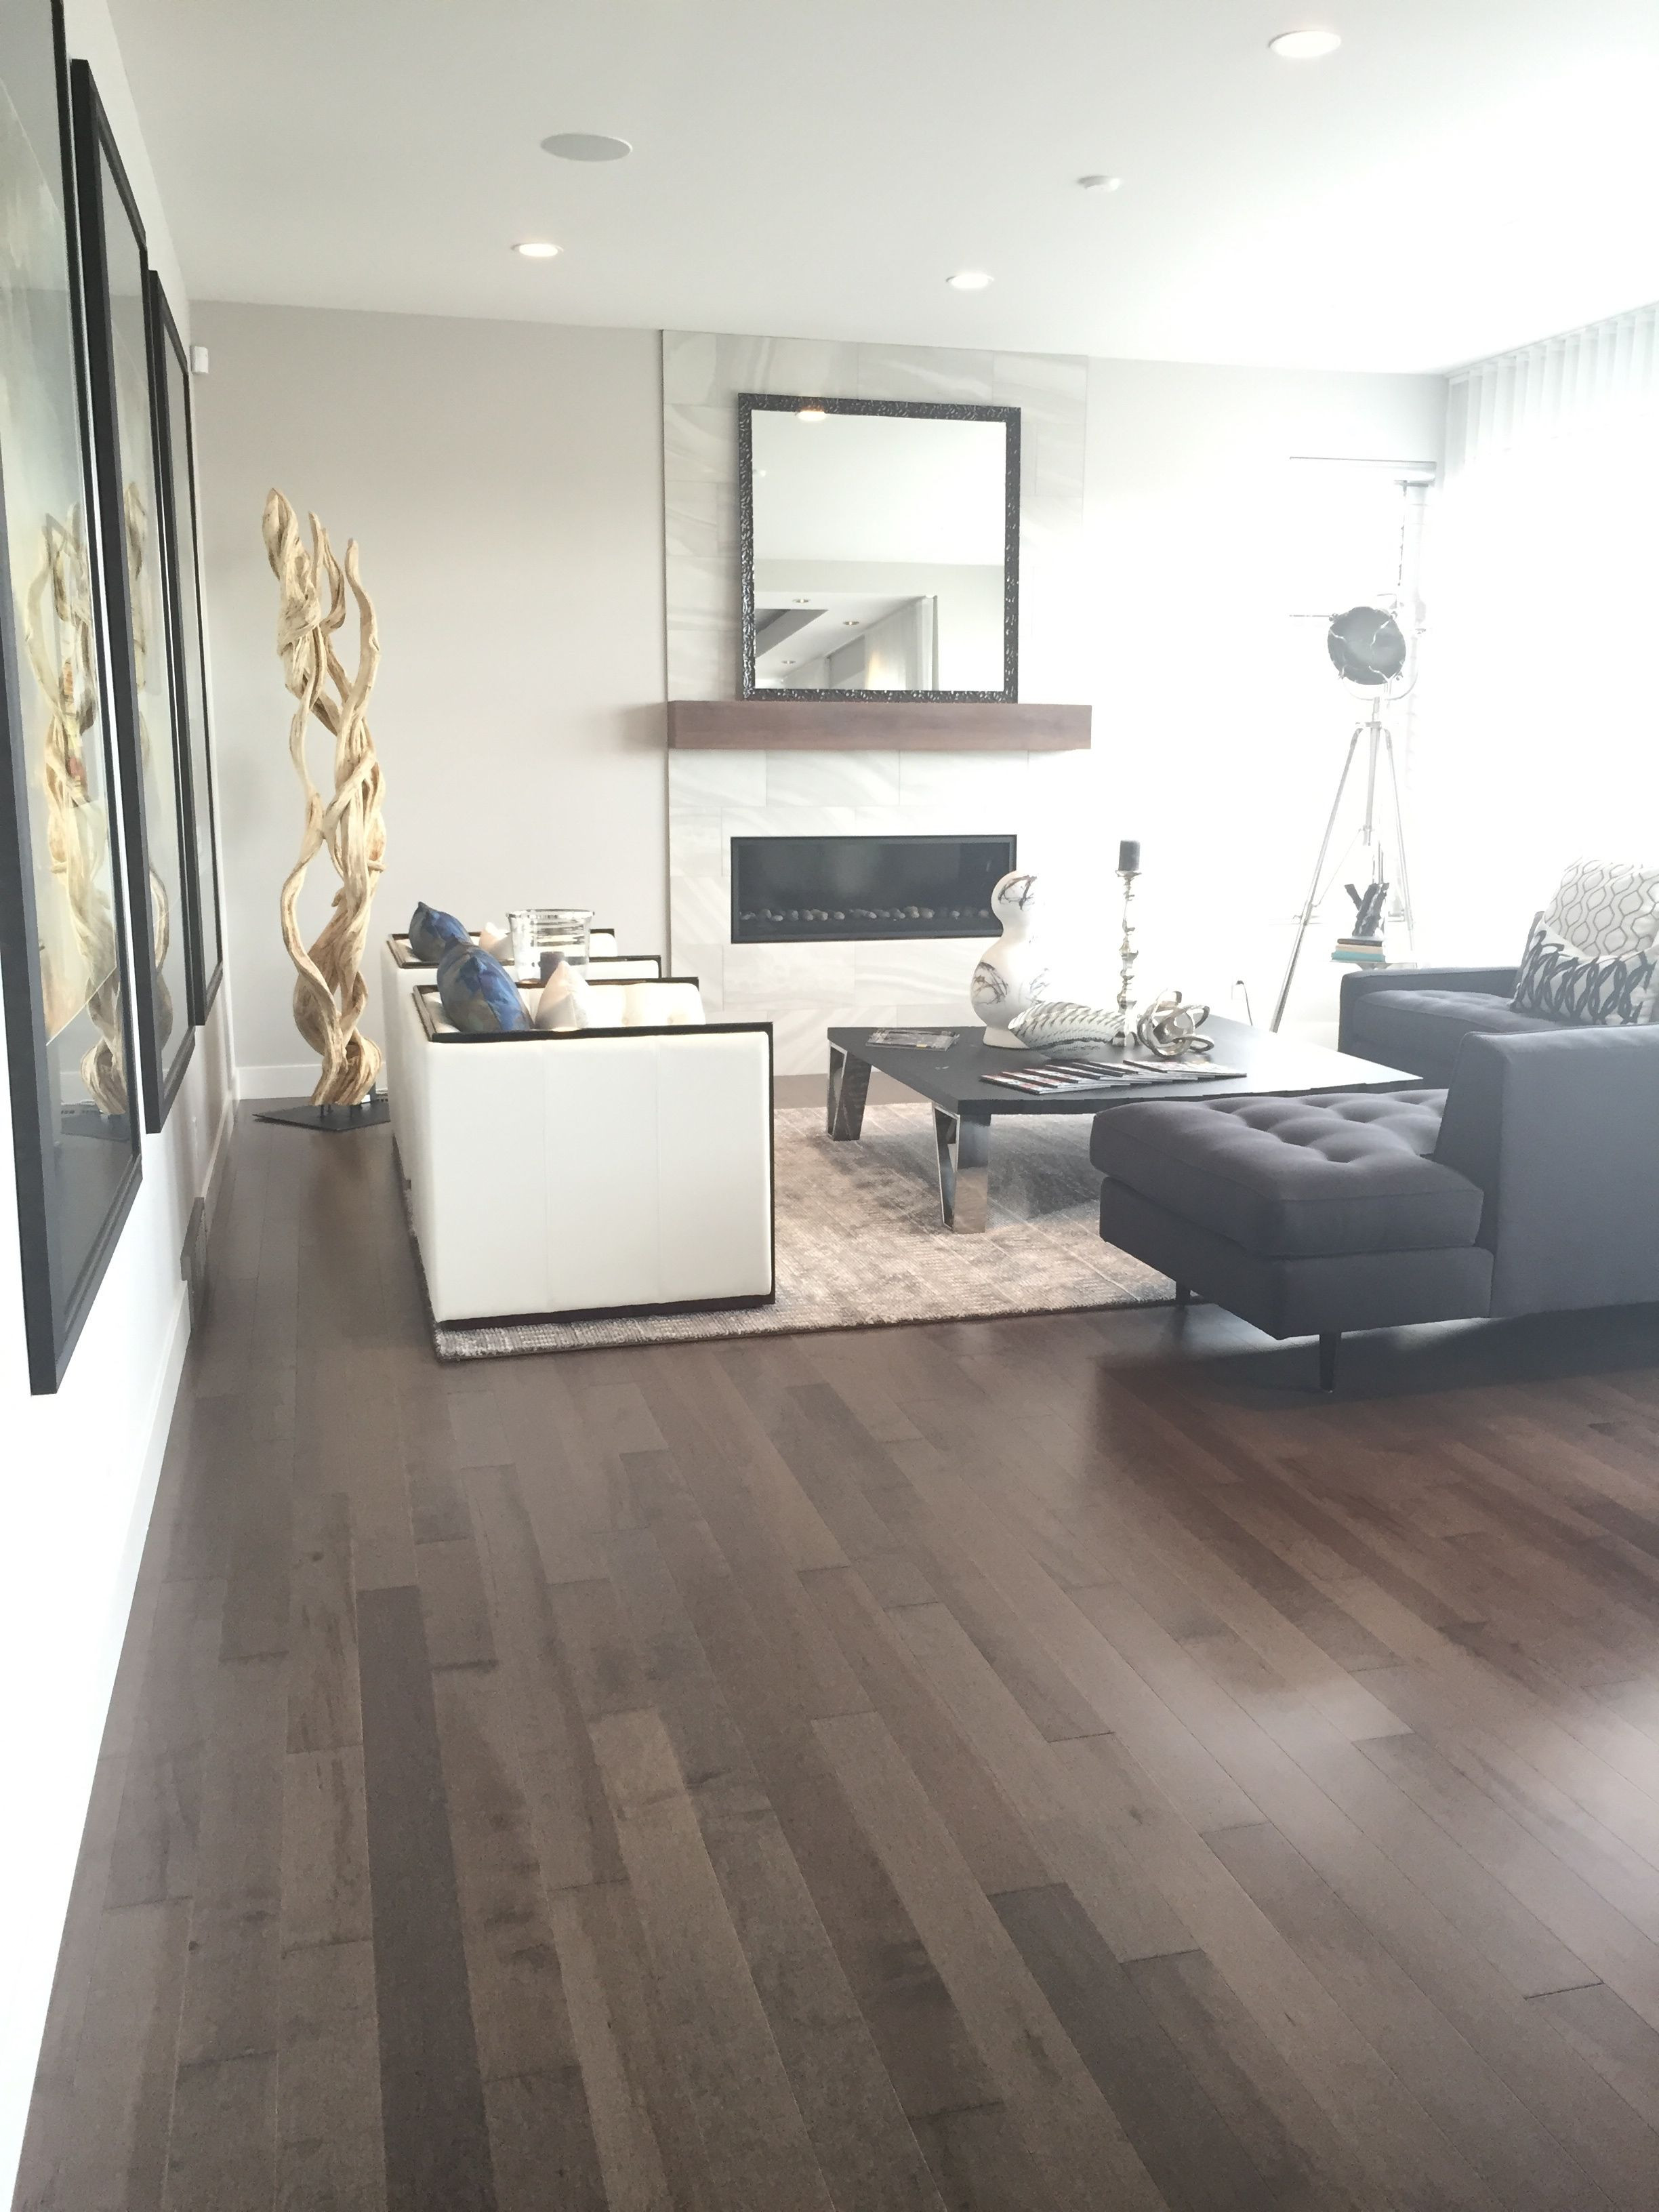 hardwood floor refinishing orange county of smoky grey essential hard maple tradition lauzon hardwood throughout beautiful living room from the cantata showhome featuring lauzons smokey grey hard maple hardwood flooring from the essential collection